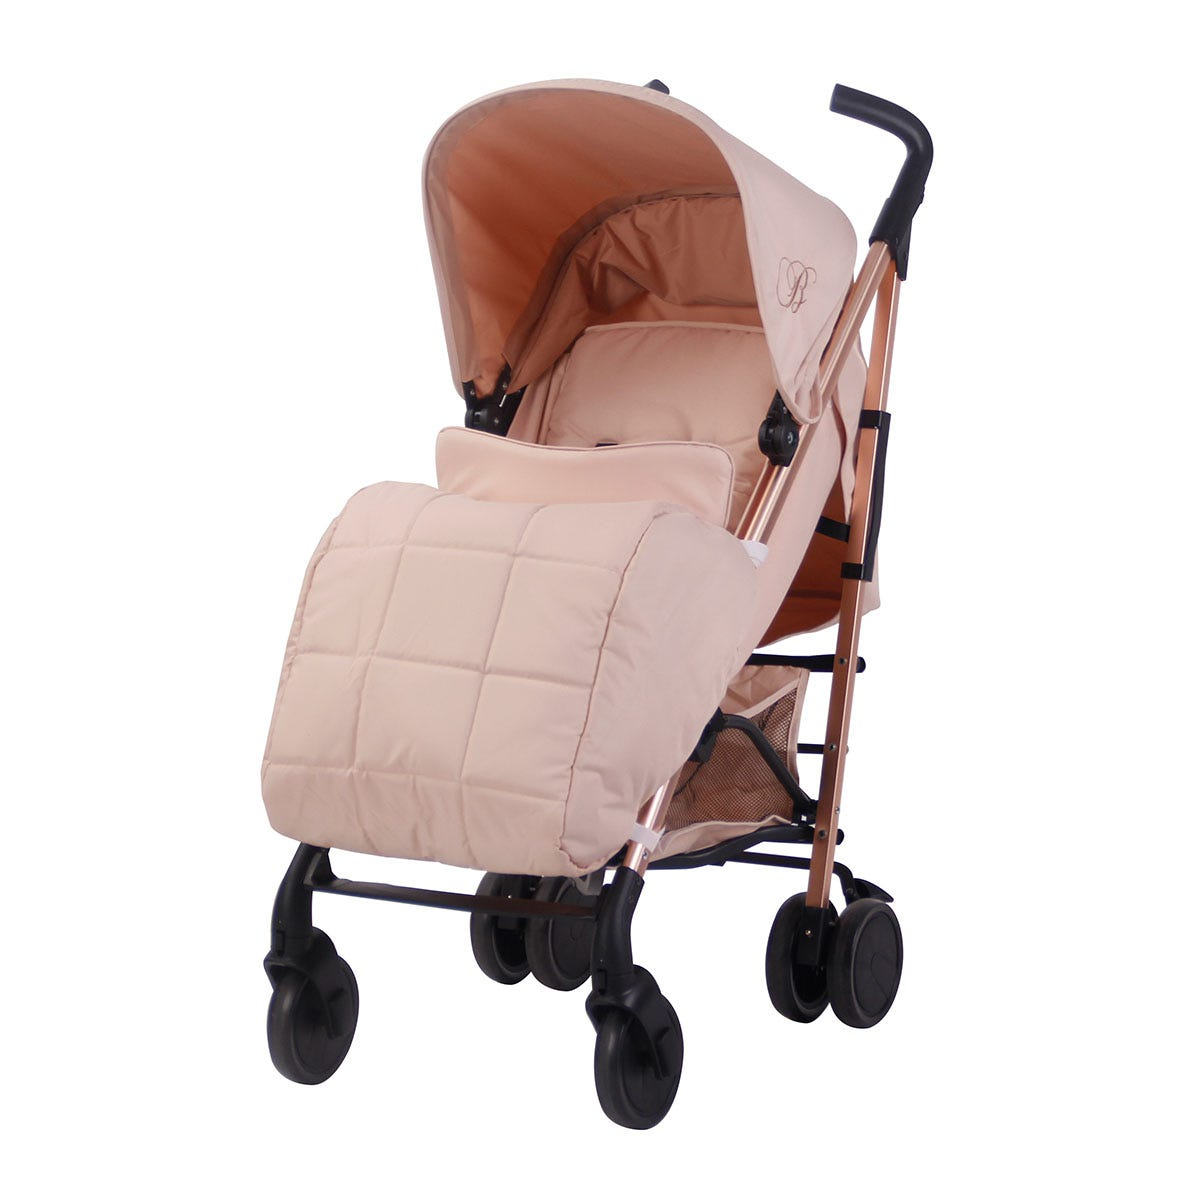 My Babiie Billie Faiers MB51 Stroller - Rose Gold and Blush